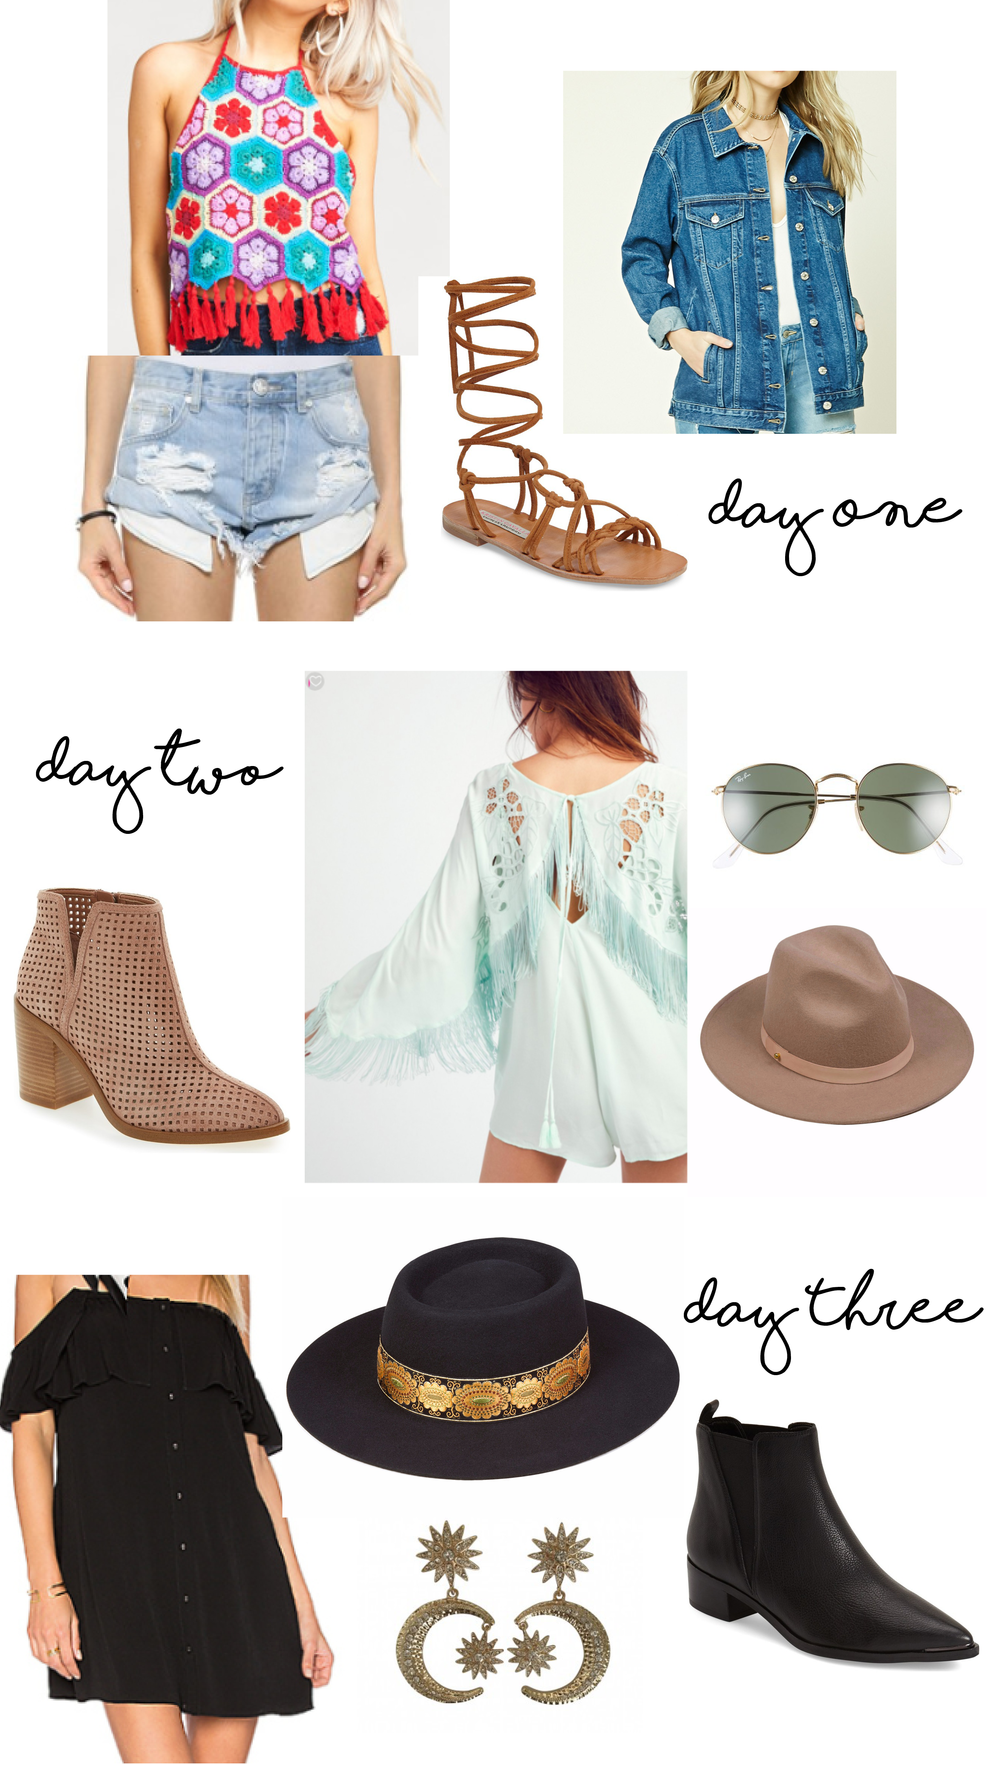 SHOP THE POST: DAY ONE: TOP | SHORTS | SANDALS | JACKET DAY TWO: ROMPER | HAT | BOOTIES | SUNNIES DAY THREE: DRESS | HAT | EARRINGS | BOOTIES